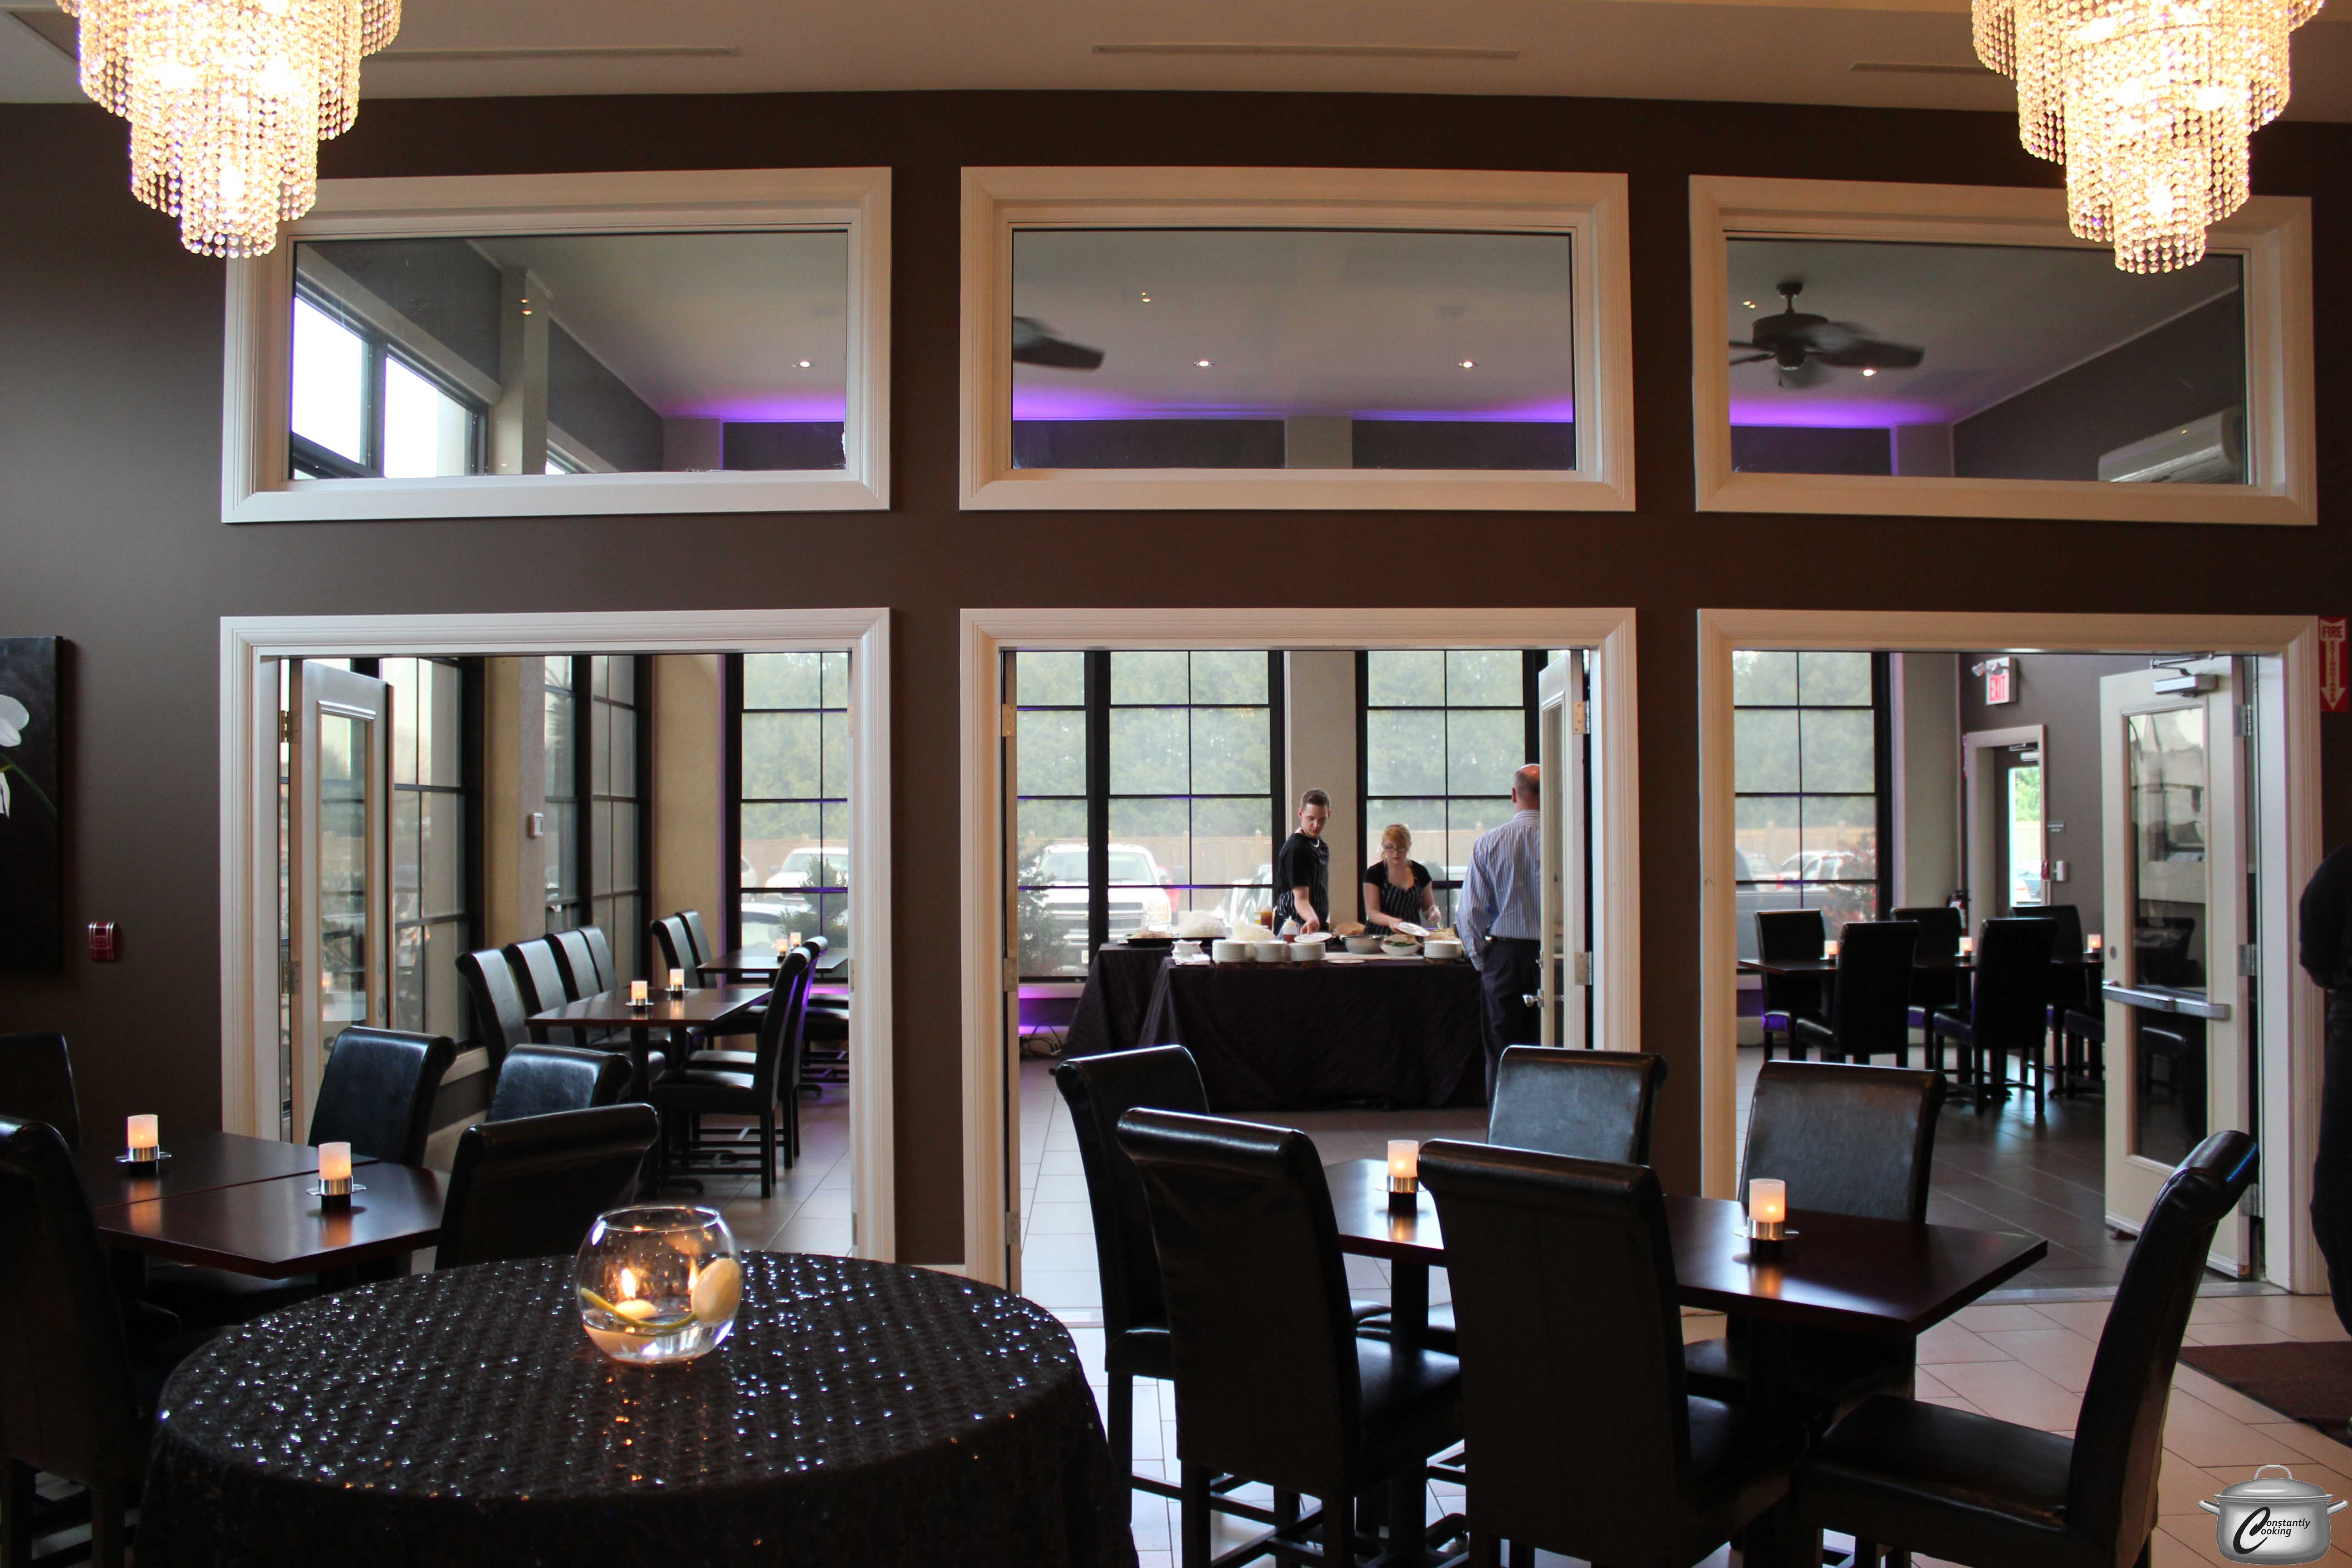 Next by michael blackie now open in stittsville a sneak for The restaurant